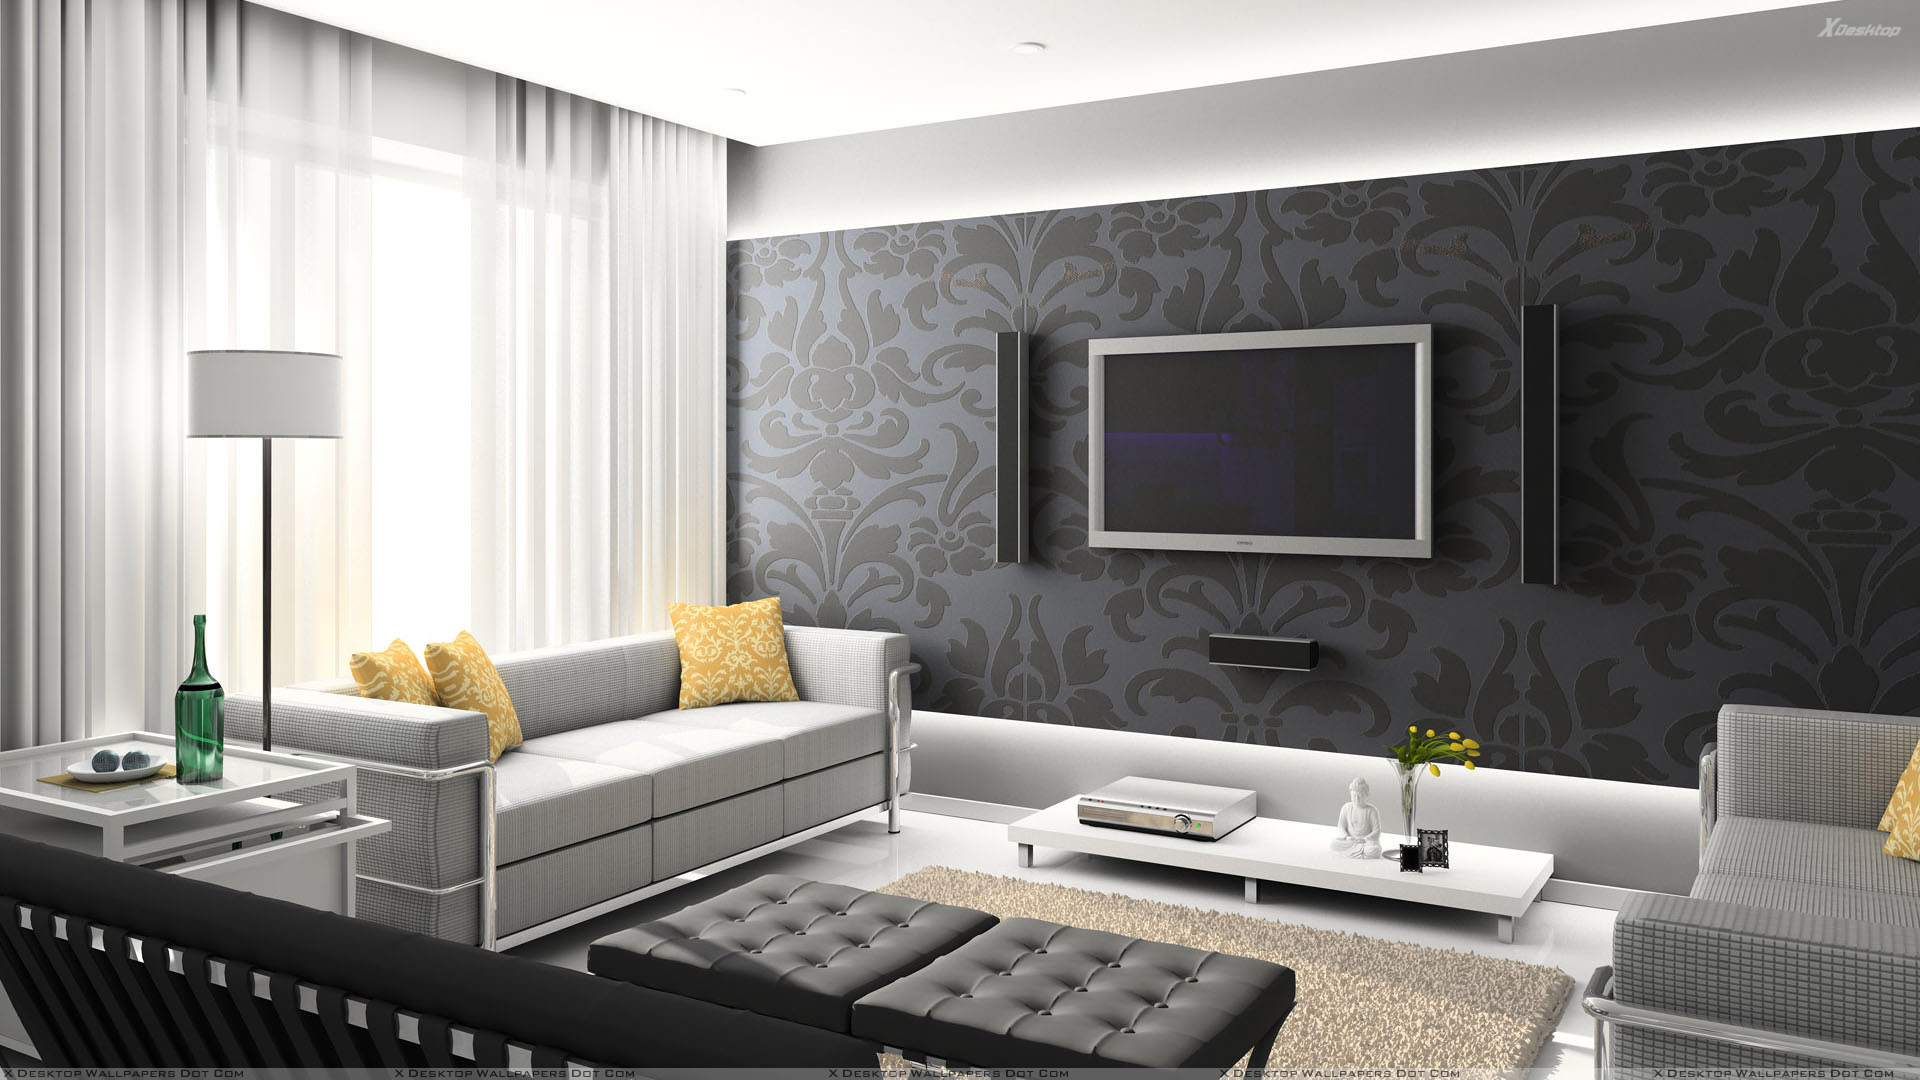 Black Digital Interior And Home Theater Room Wallpaper 1920x1080